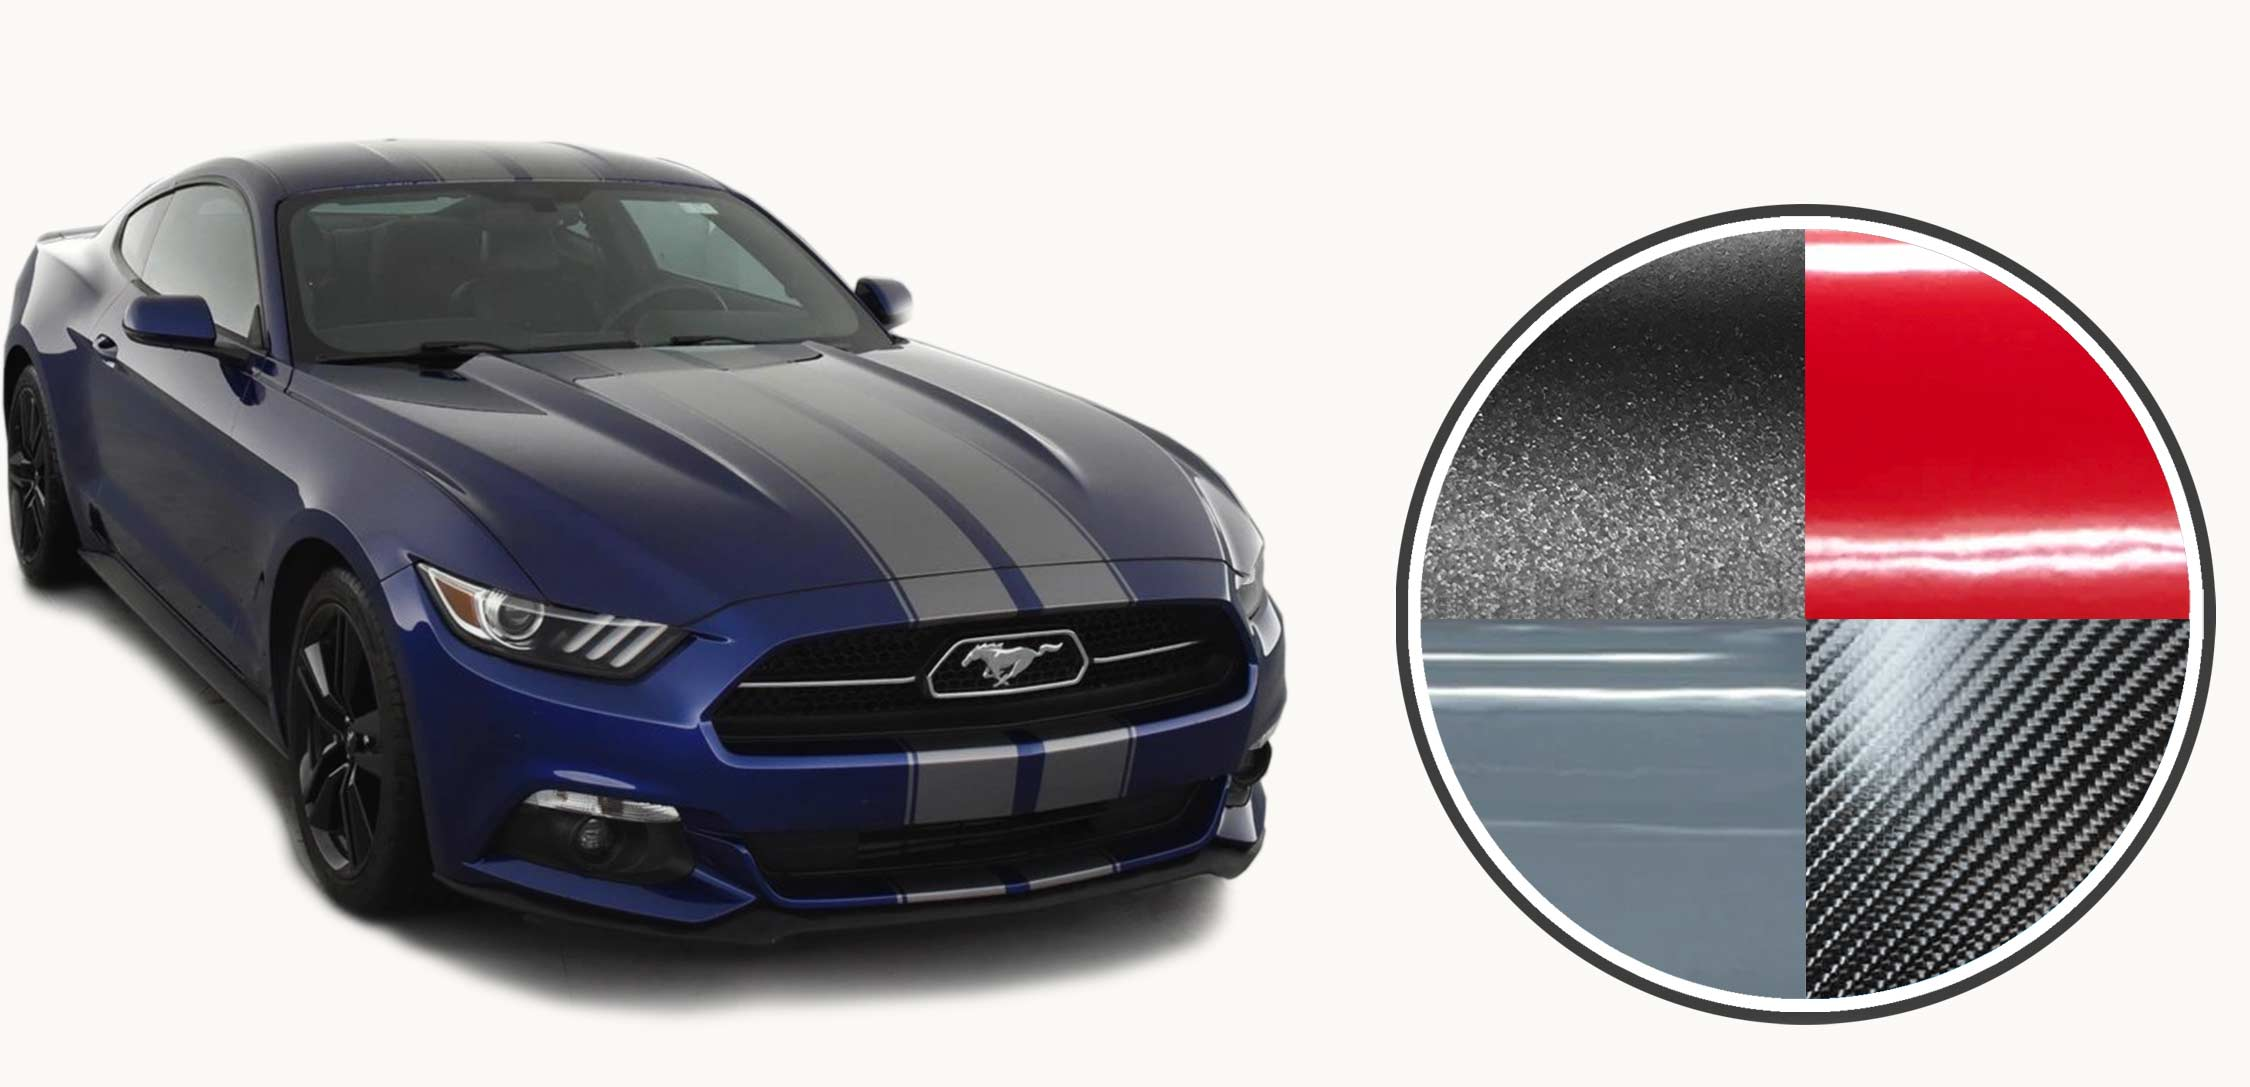 Dark grey Racing stripes and decals on a navy Ford Mustang